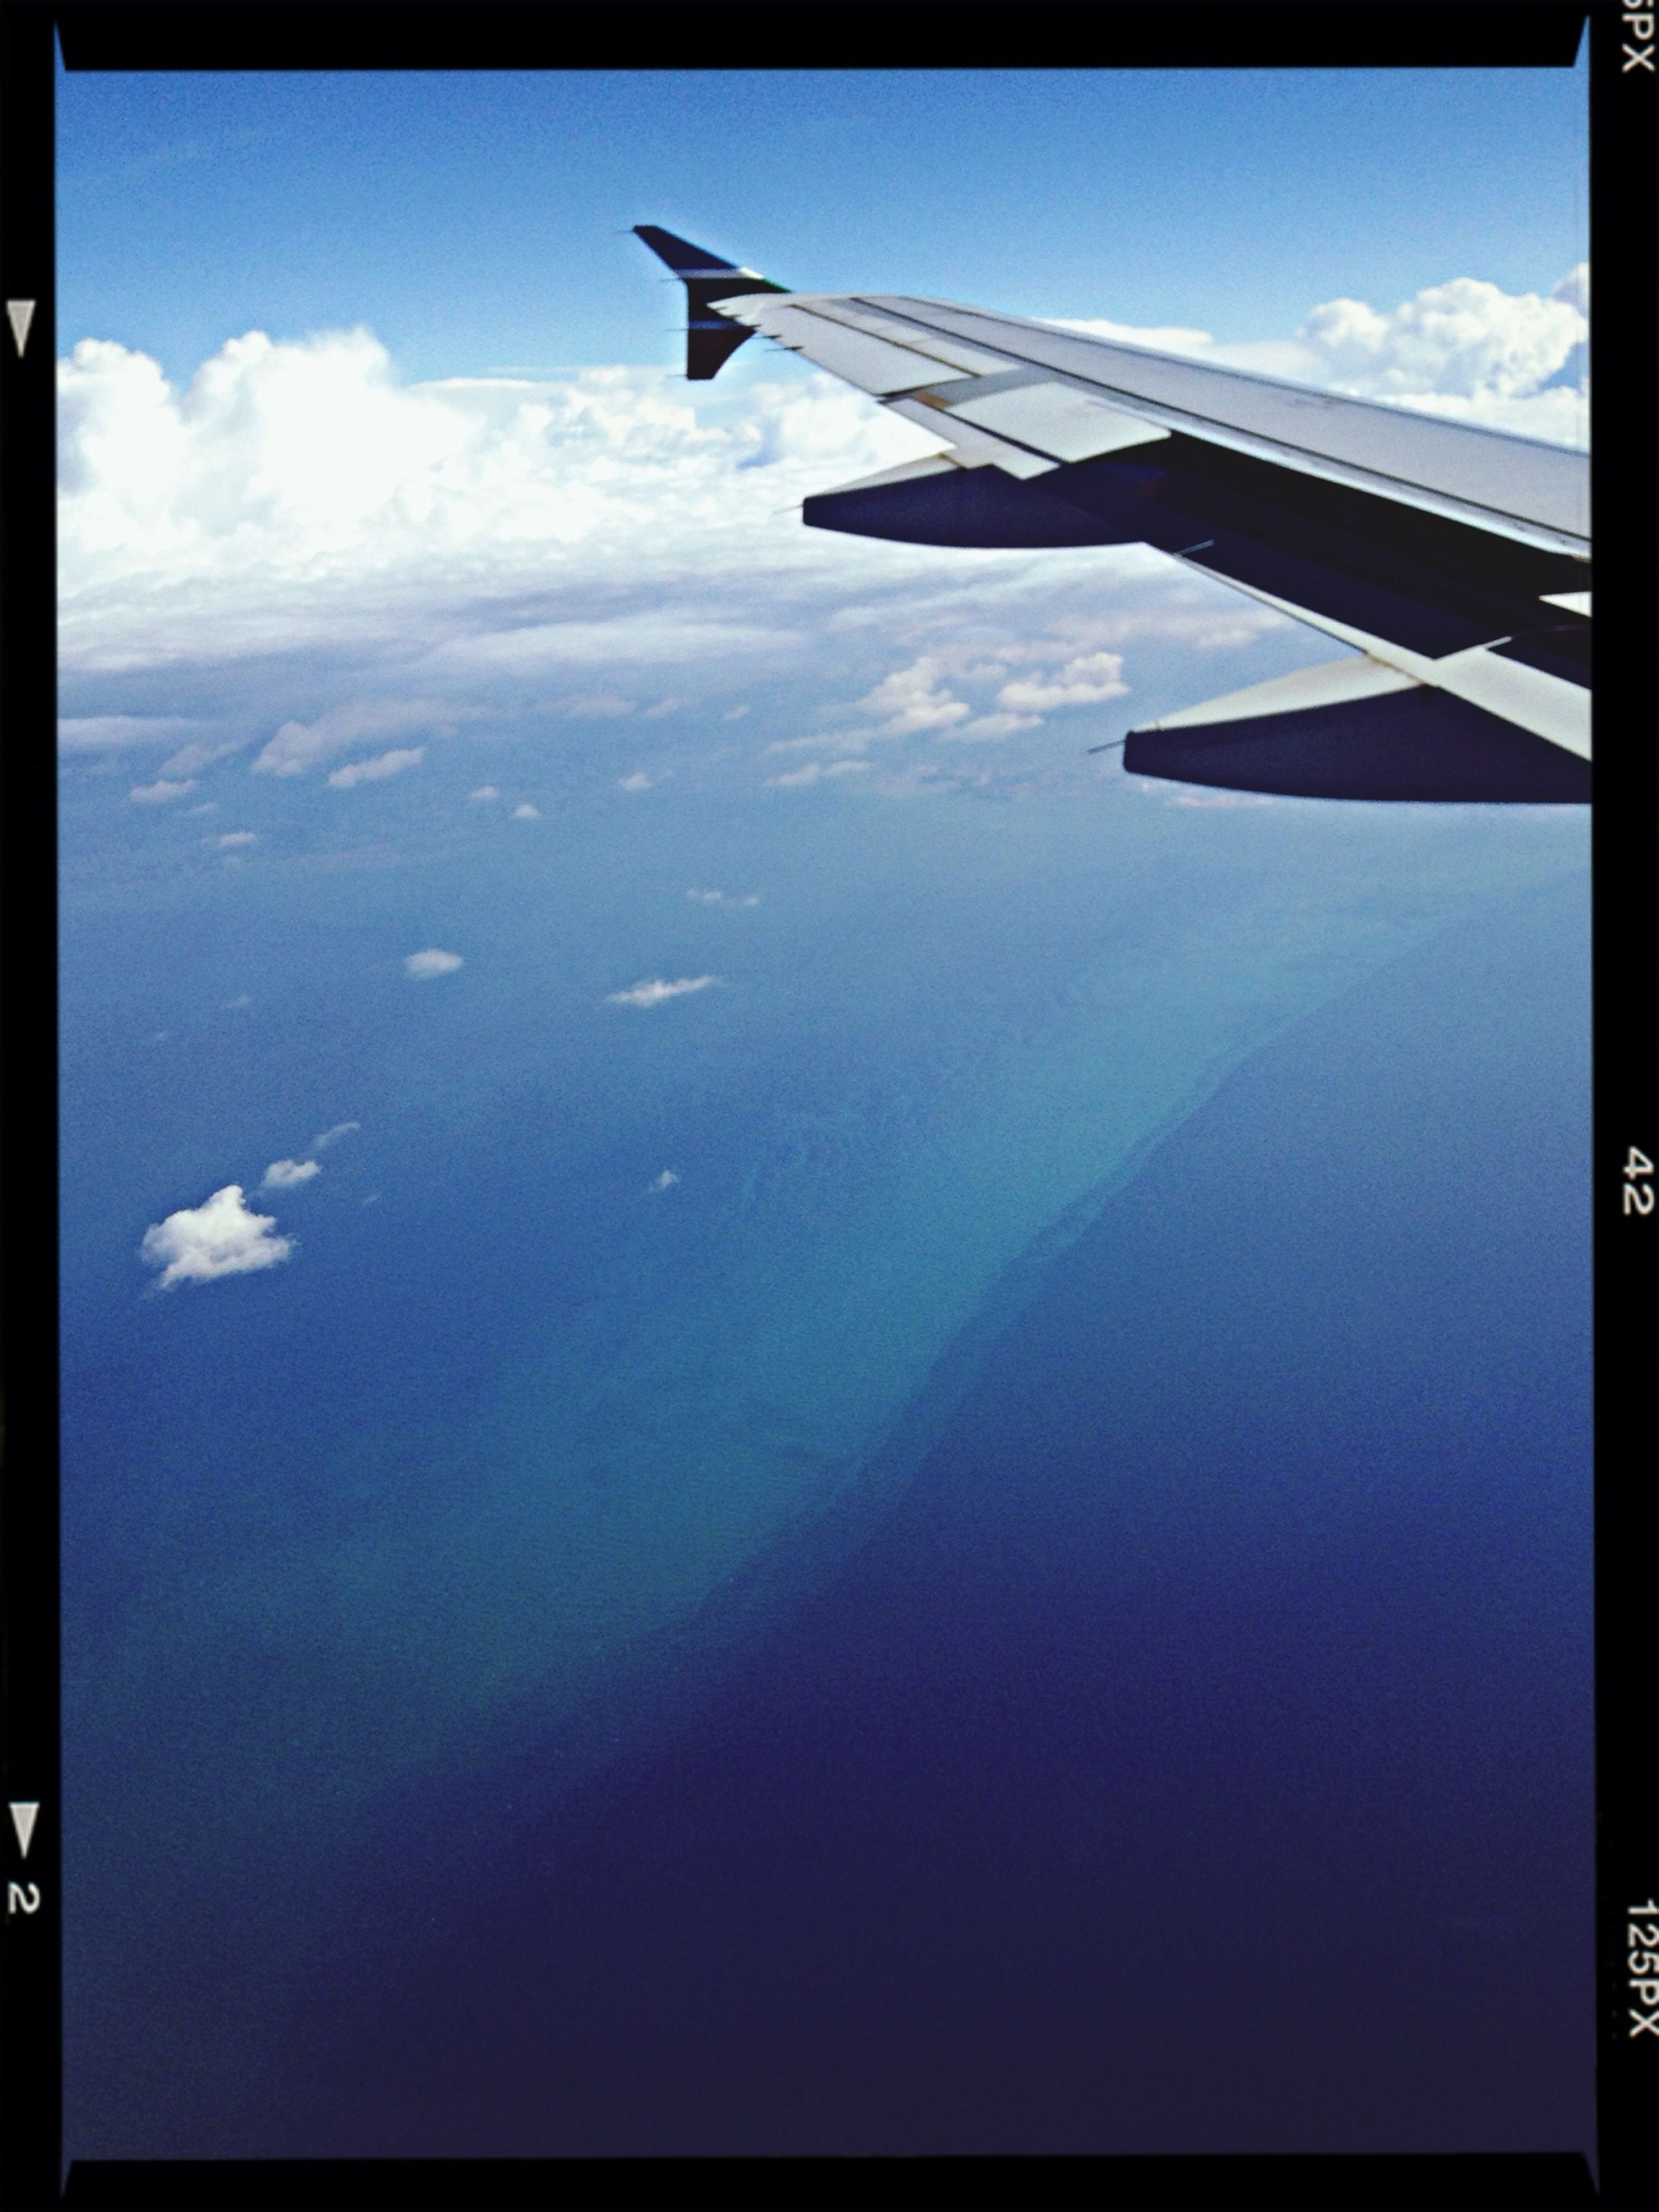 aircraft wing, airplane, flying, sky, air vehicle, transportation, aerial view, cloud - sky, scenics, beauty in nature, transfer print, blue, part of, cloud, nature, mid-air, tranquil scene, mode of transport, tranquility, landscape